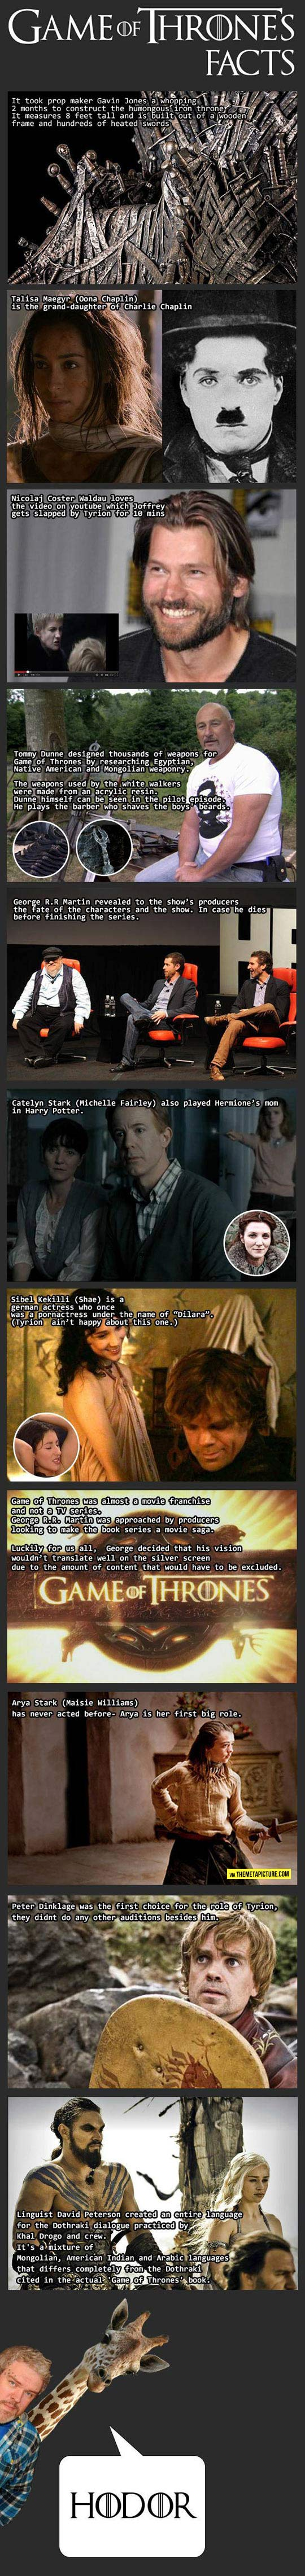 Some interesting Game of Thrones facts…